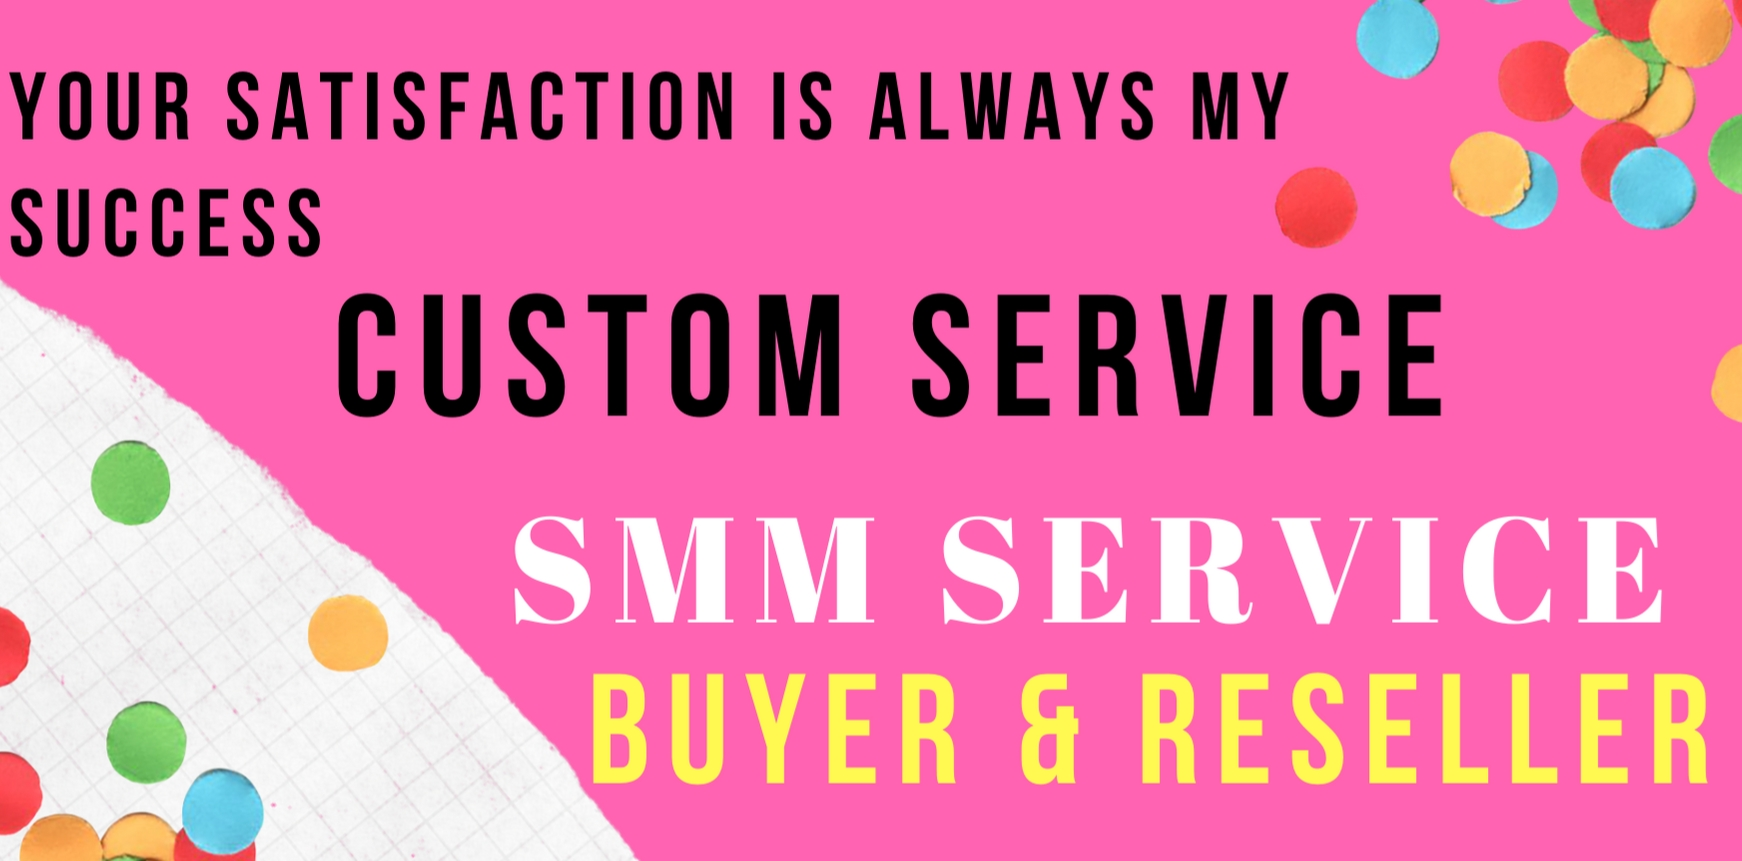 Custom Service For Our Social Media Marketing Services Buyer